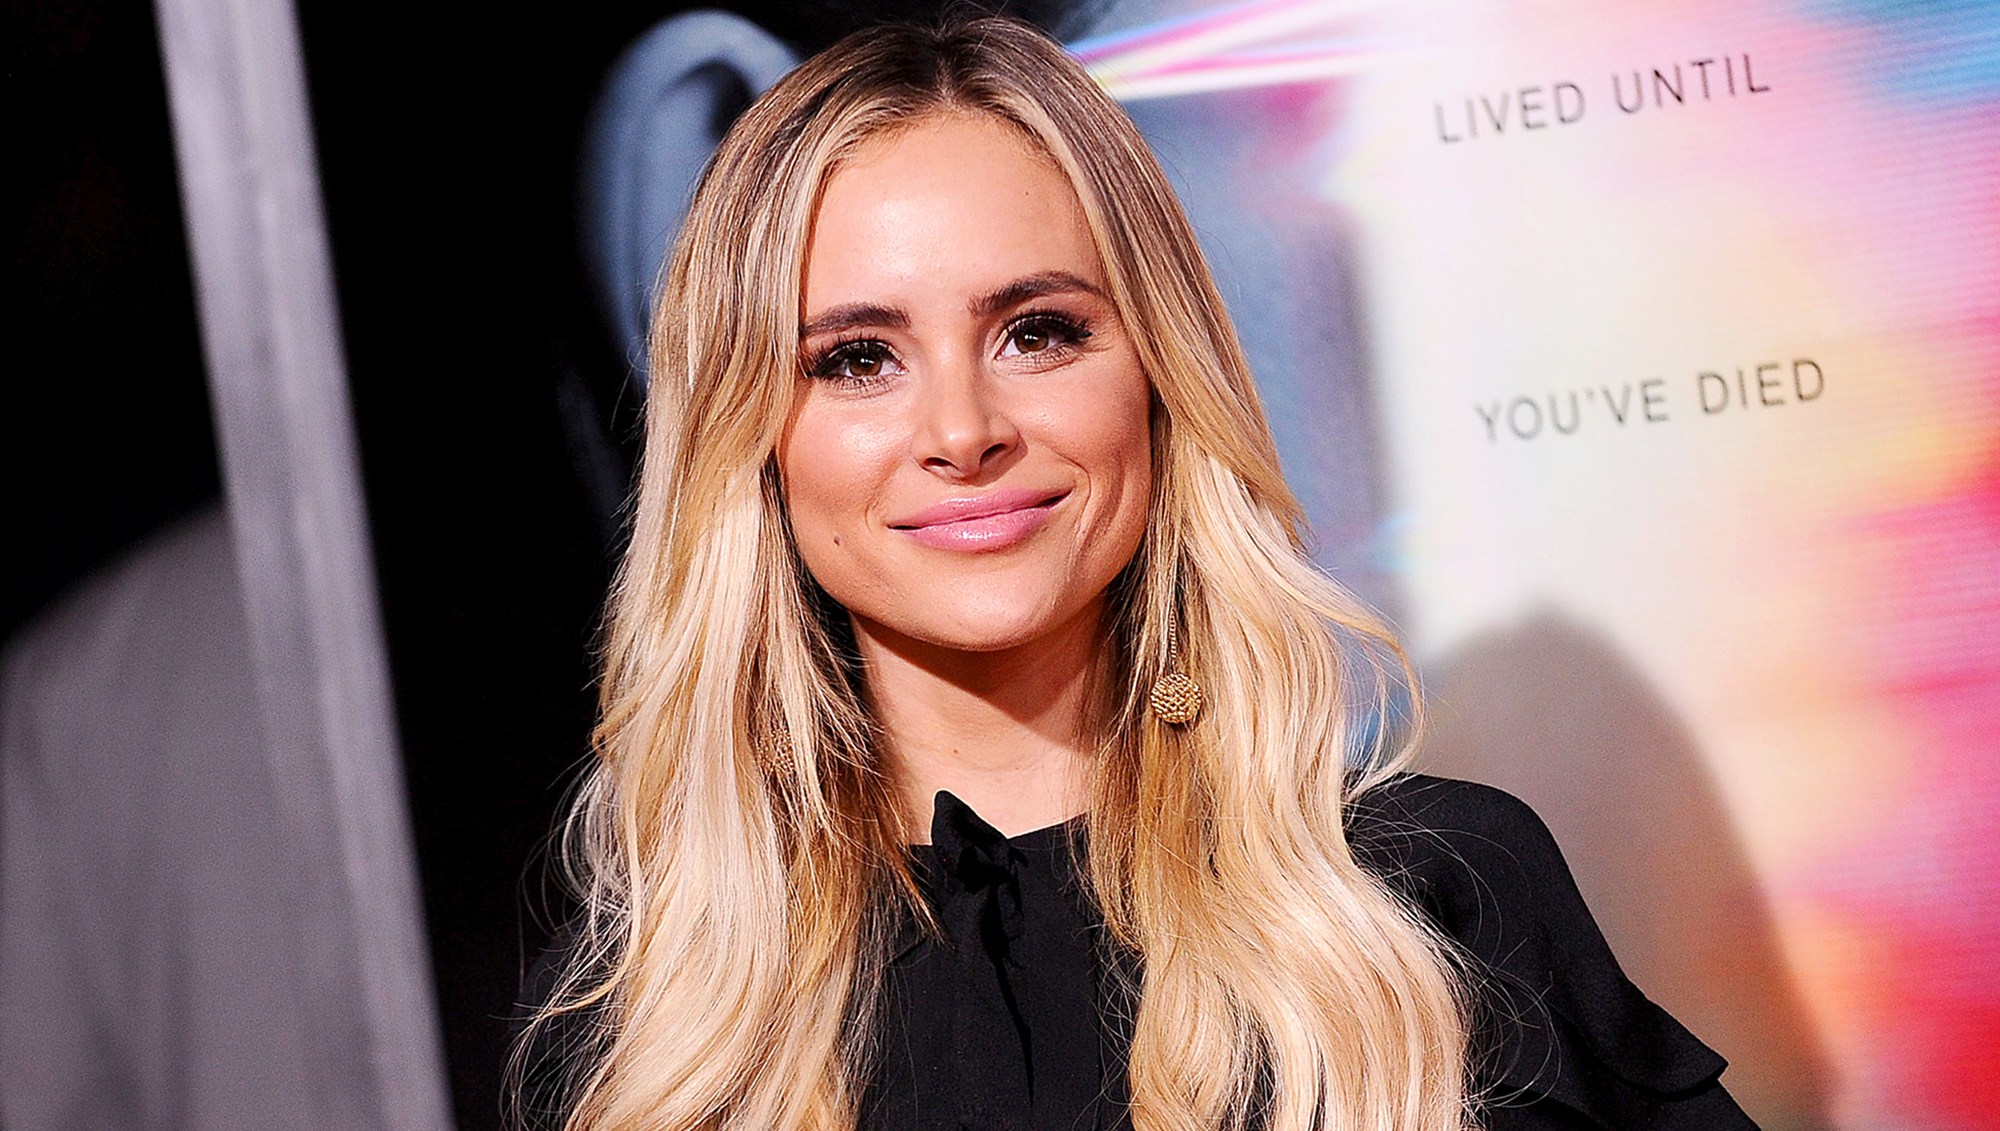 """Amanda Stanton attends the premiere of """"Flatliners"""" at The Theatre at Ace Hotel on September 27, 2017 in Los Angeles, California."""